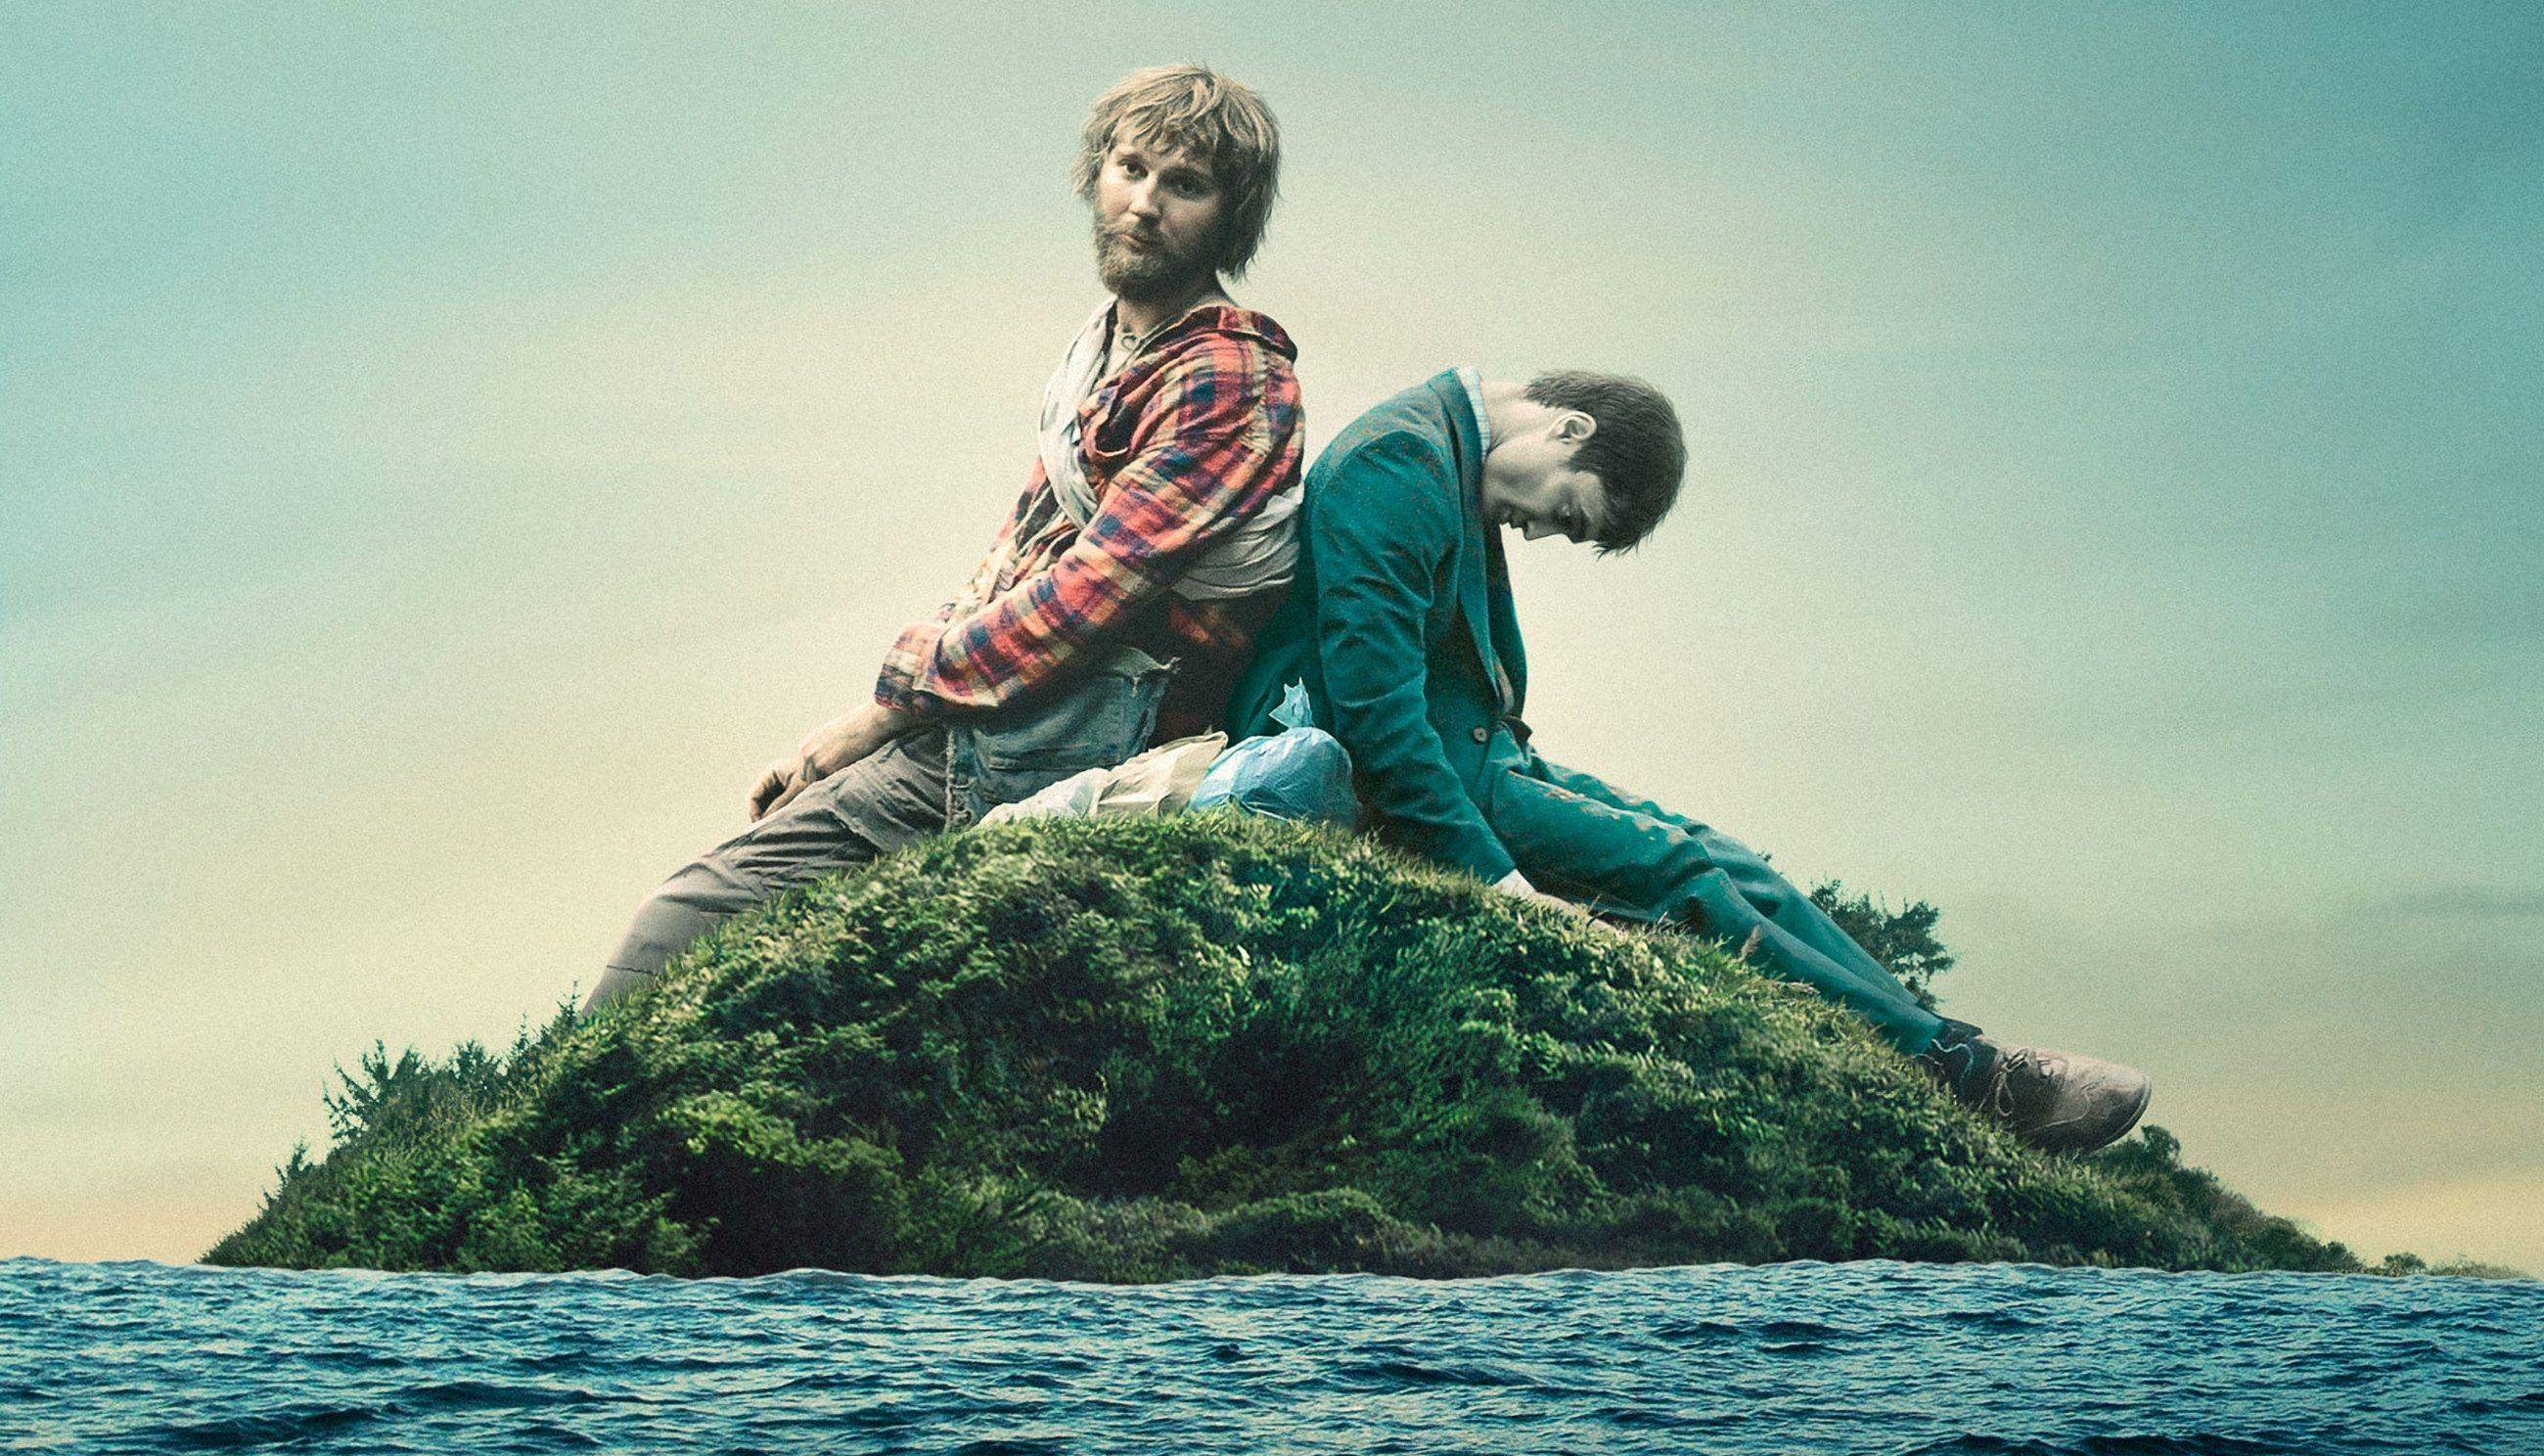 3 Swiss Army Man HD Wallpapers | Backgrounds - Wallpaper Abyss